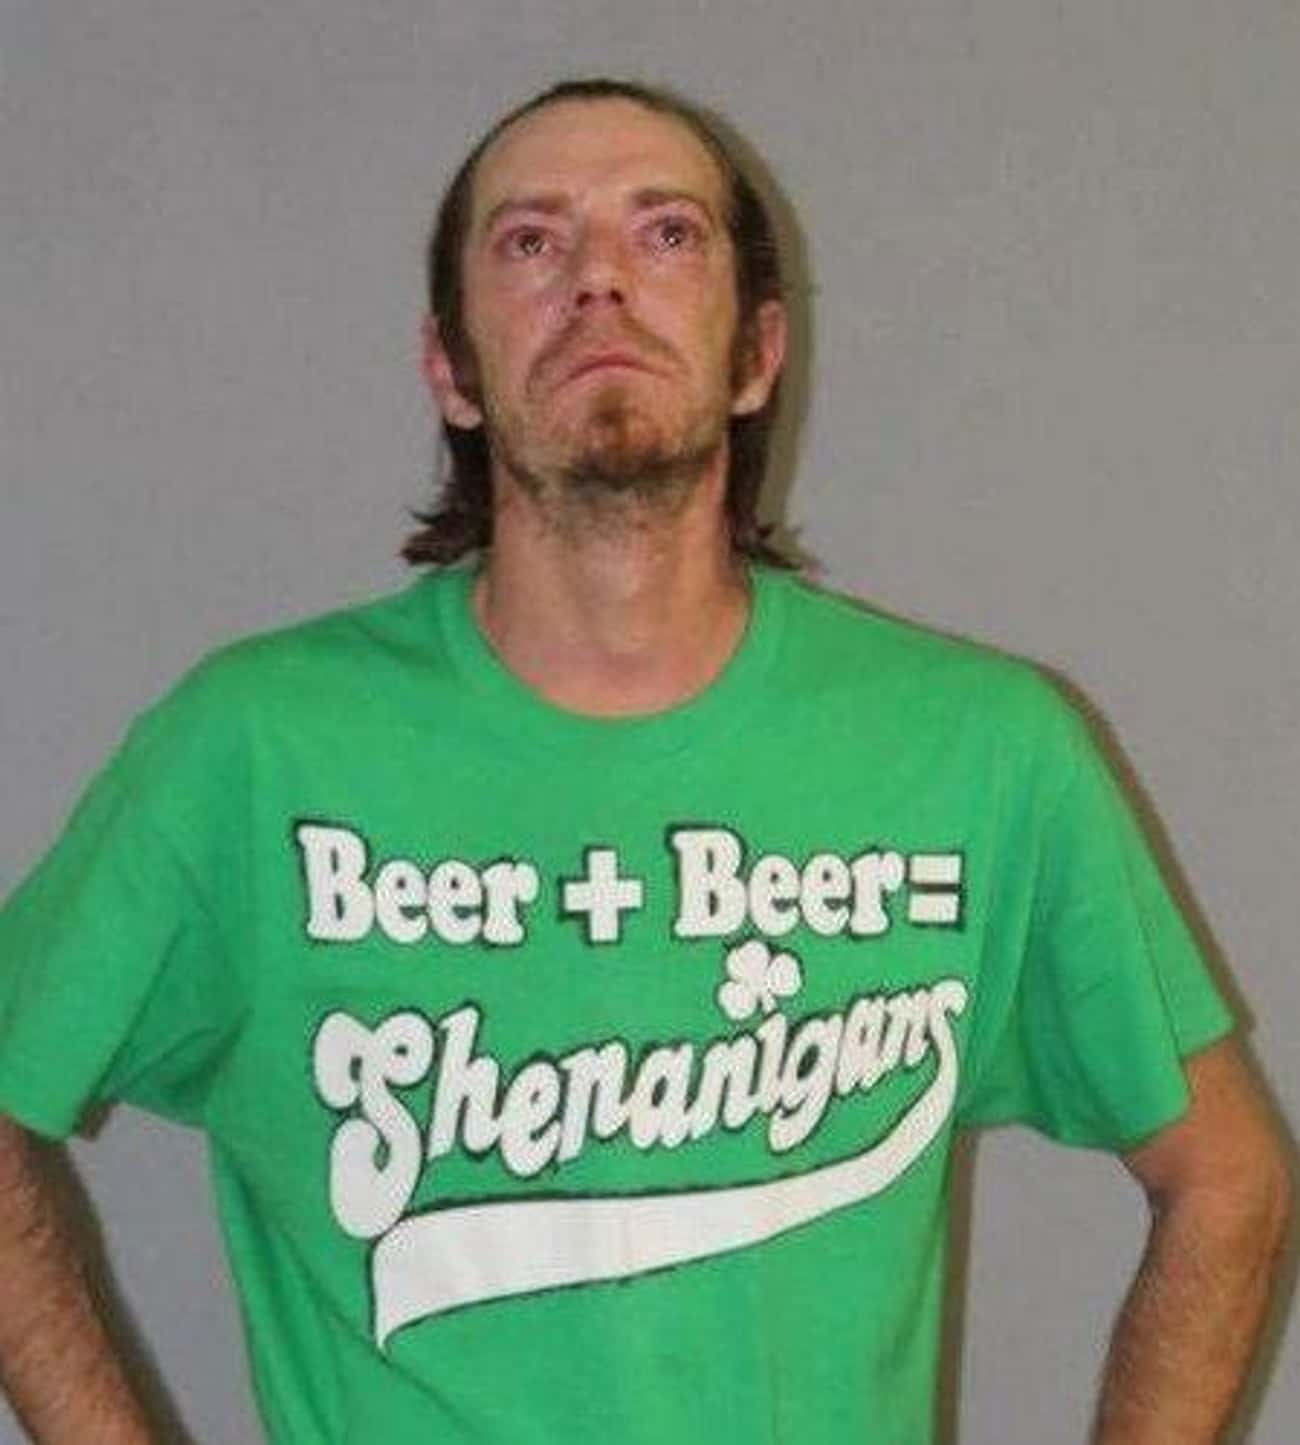 Beer + Beer = Shenanigans is listed (or ranked) 3 on the list People Who Couldn't Have Known They'd Be Wearing The Perfect Shirt For Their Mugshot